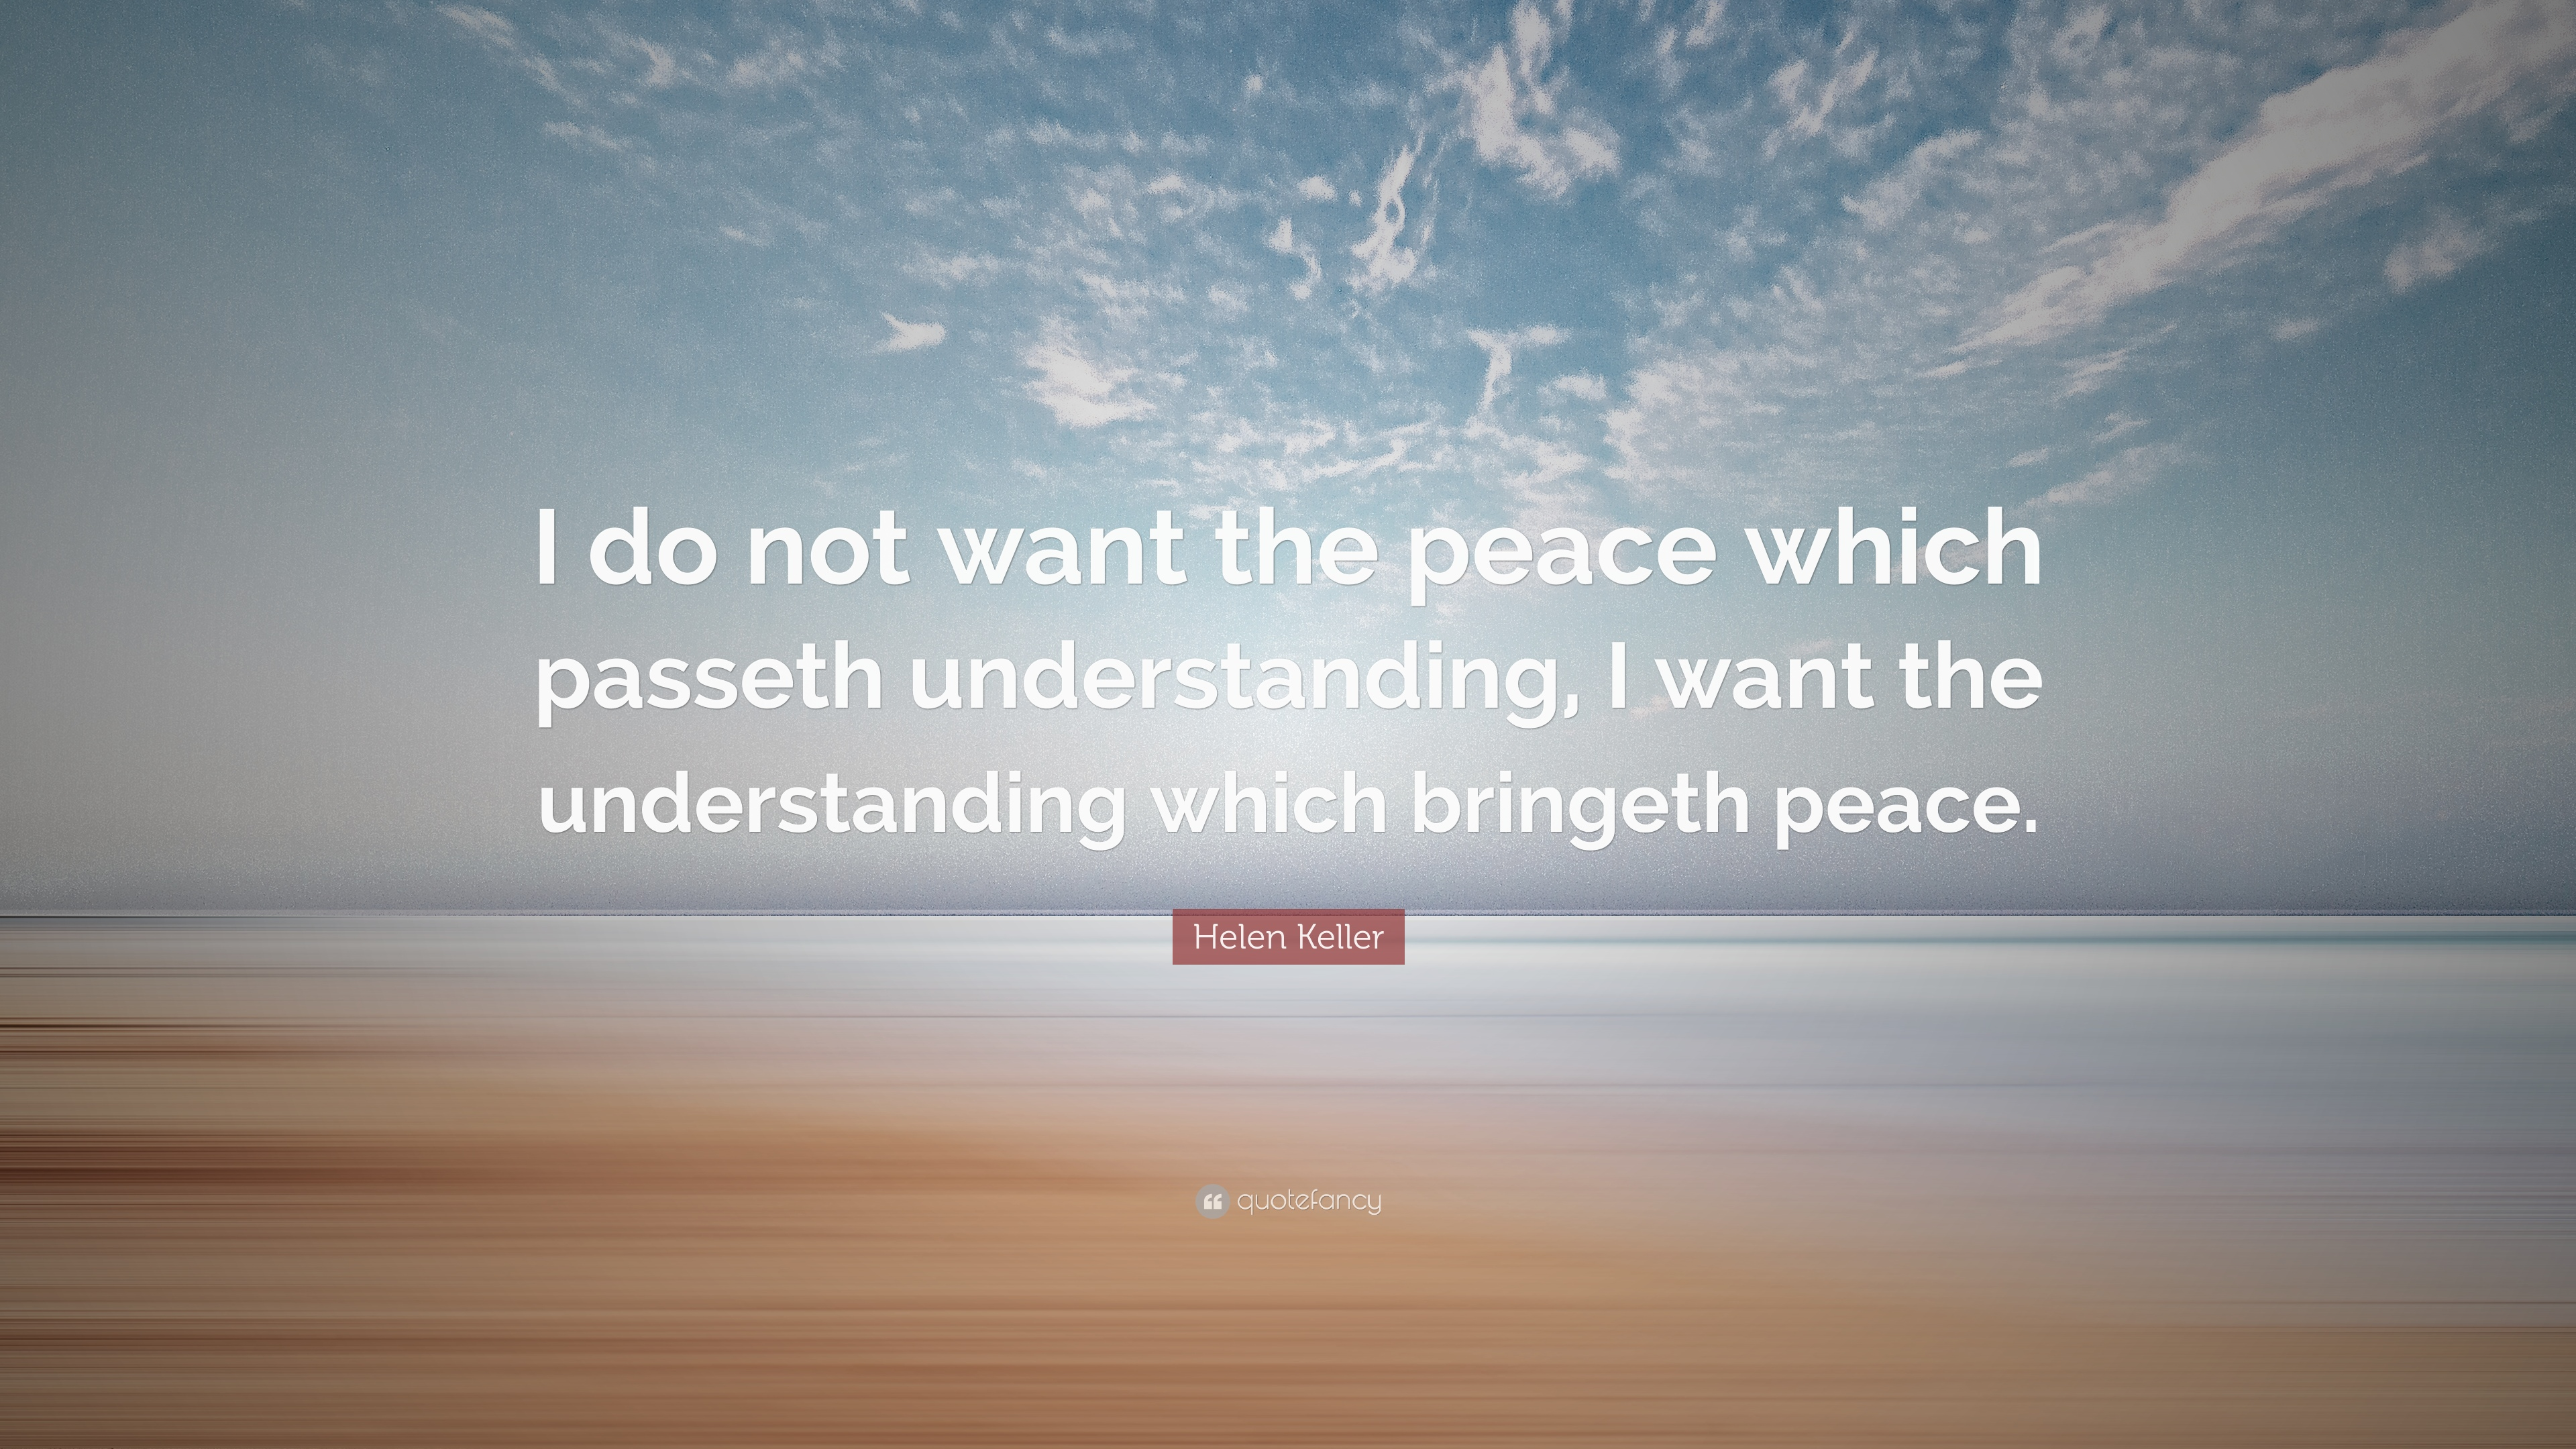 Helen Keller Quote I Do Not Want The Peace Which Passeth Understanding I Want The Understanding Which Bringeth Peace 12 Wallpapers Quotefancy